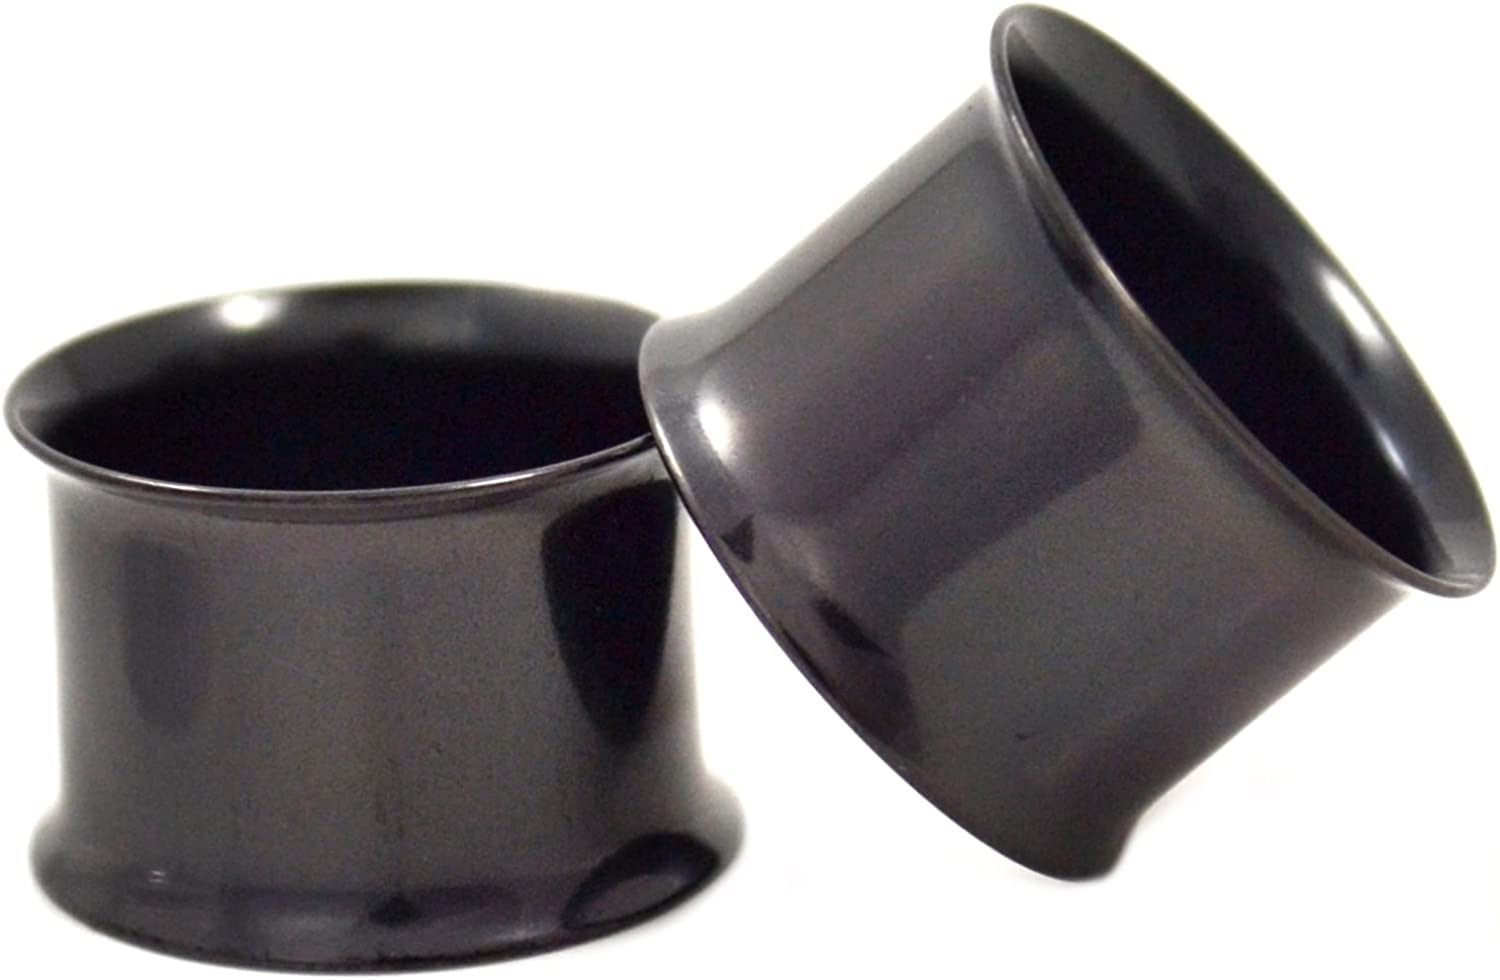 Super special price 40% OFF Cheap Sale Pair of Black Titanium Plated Ear Double Gau Plugs Flared Tunnel